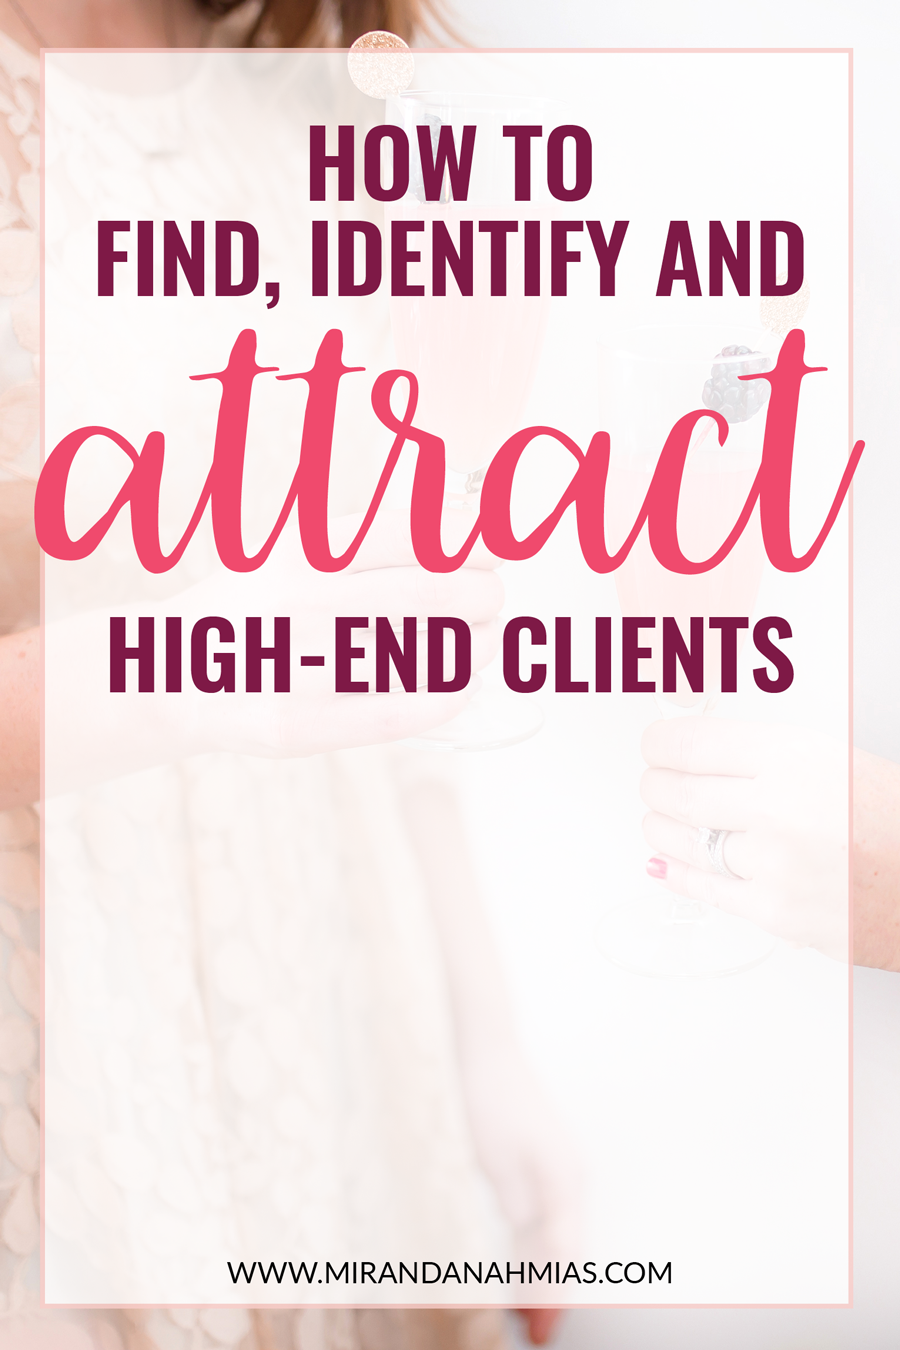 Want to learn exactly how to find, identify, and attract high-end clients? I cover the full high-end client onboarding process in my new blog post. Click to read and discover the secrets now! // Miranda Nahmias & Co. Digital Marketing + Virtual Assistance